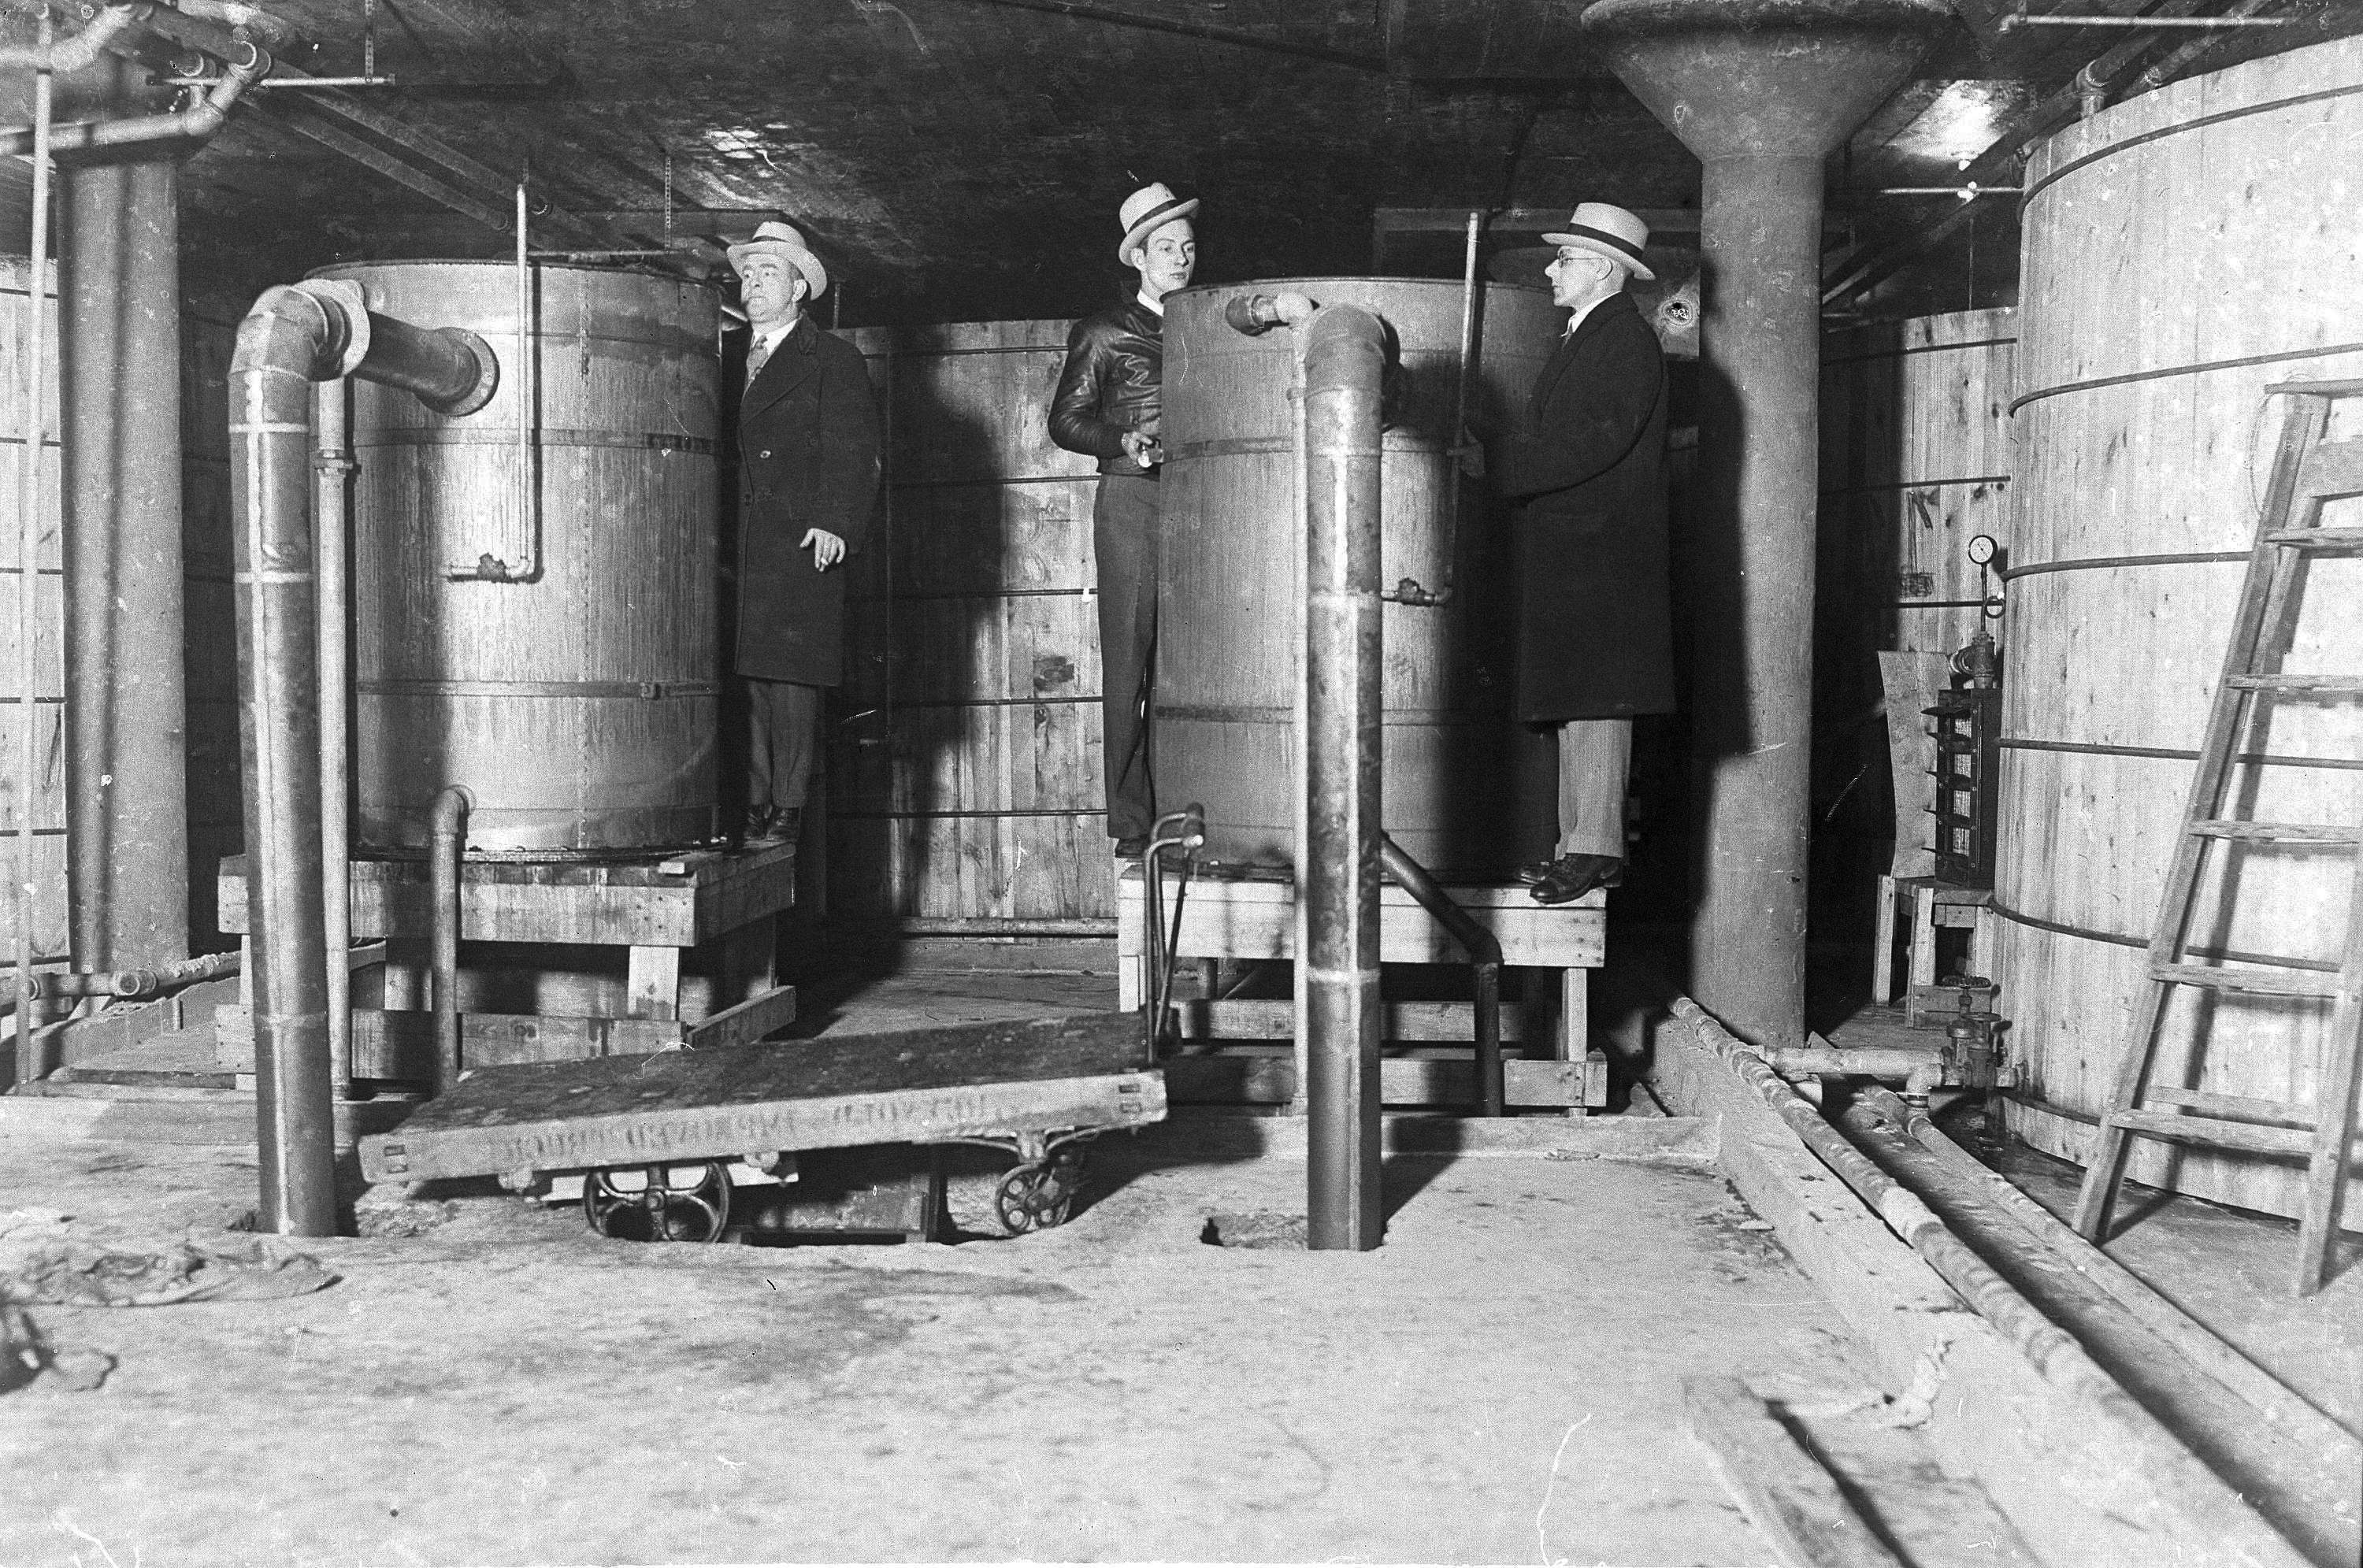 How did the Speakeasies during the American prohibition change the way that alcohol was consumed and produced?